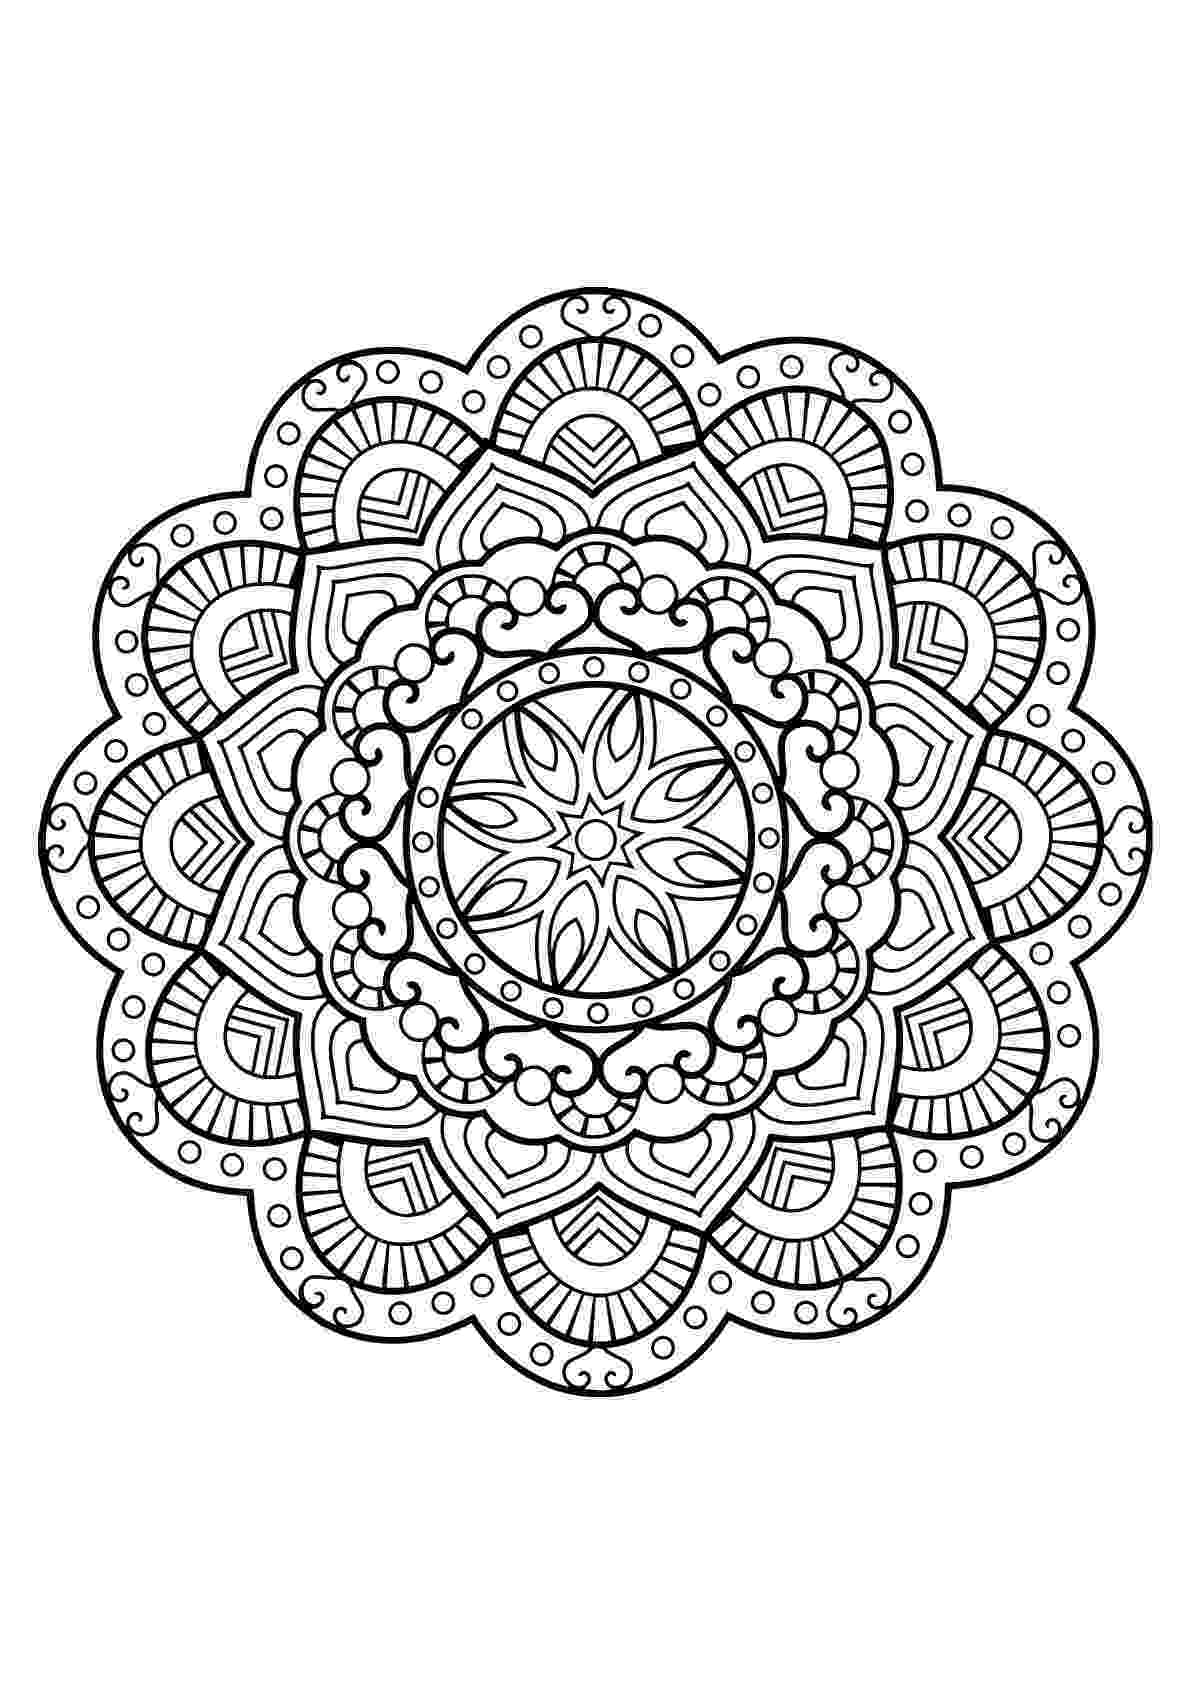 mandala coloring pages for adults free how to make your own mandala coloring pages for free free adults coloring mandala pages for